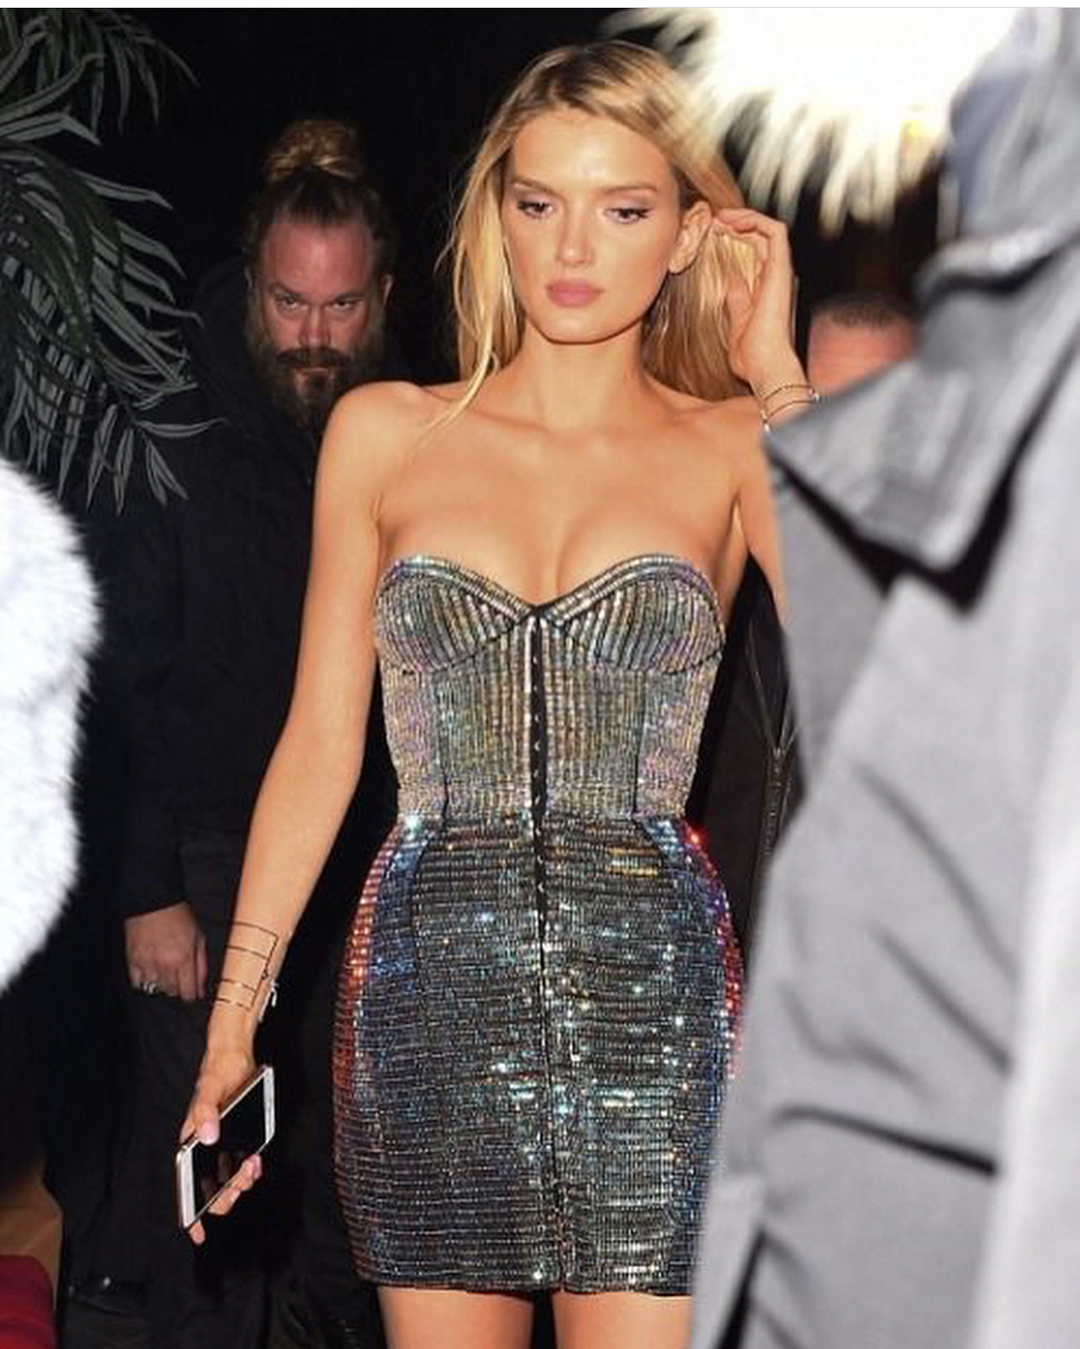 Strapless Shiny Crystal Sequin Mini Dress For Cocktail Parties 2019